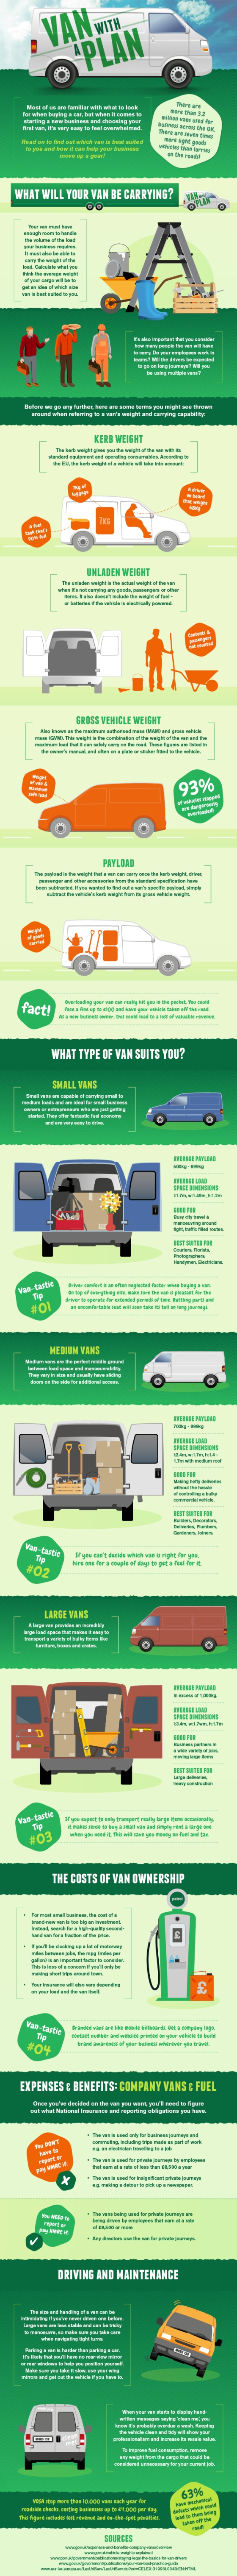 Infographic : All You Need to Know About Buying Your New Business Van